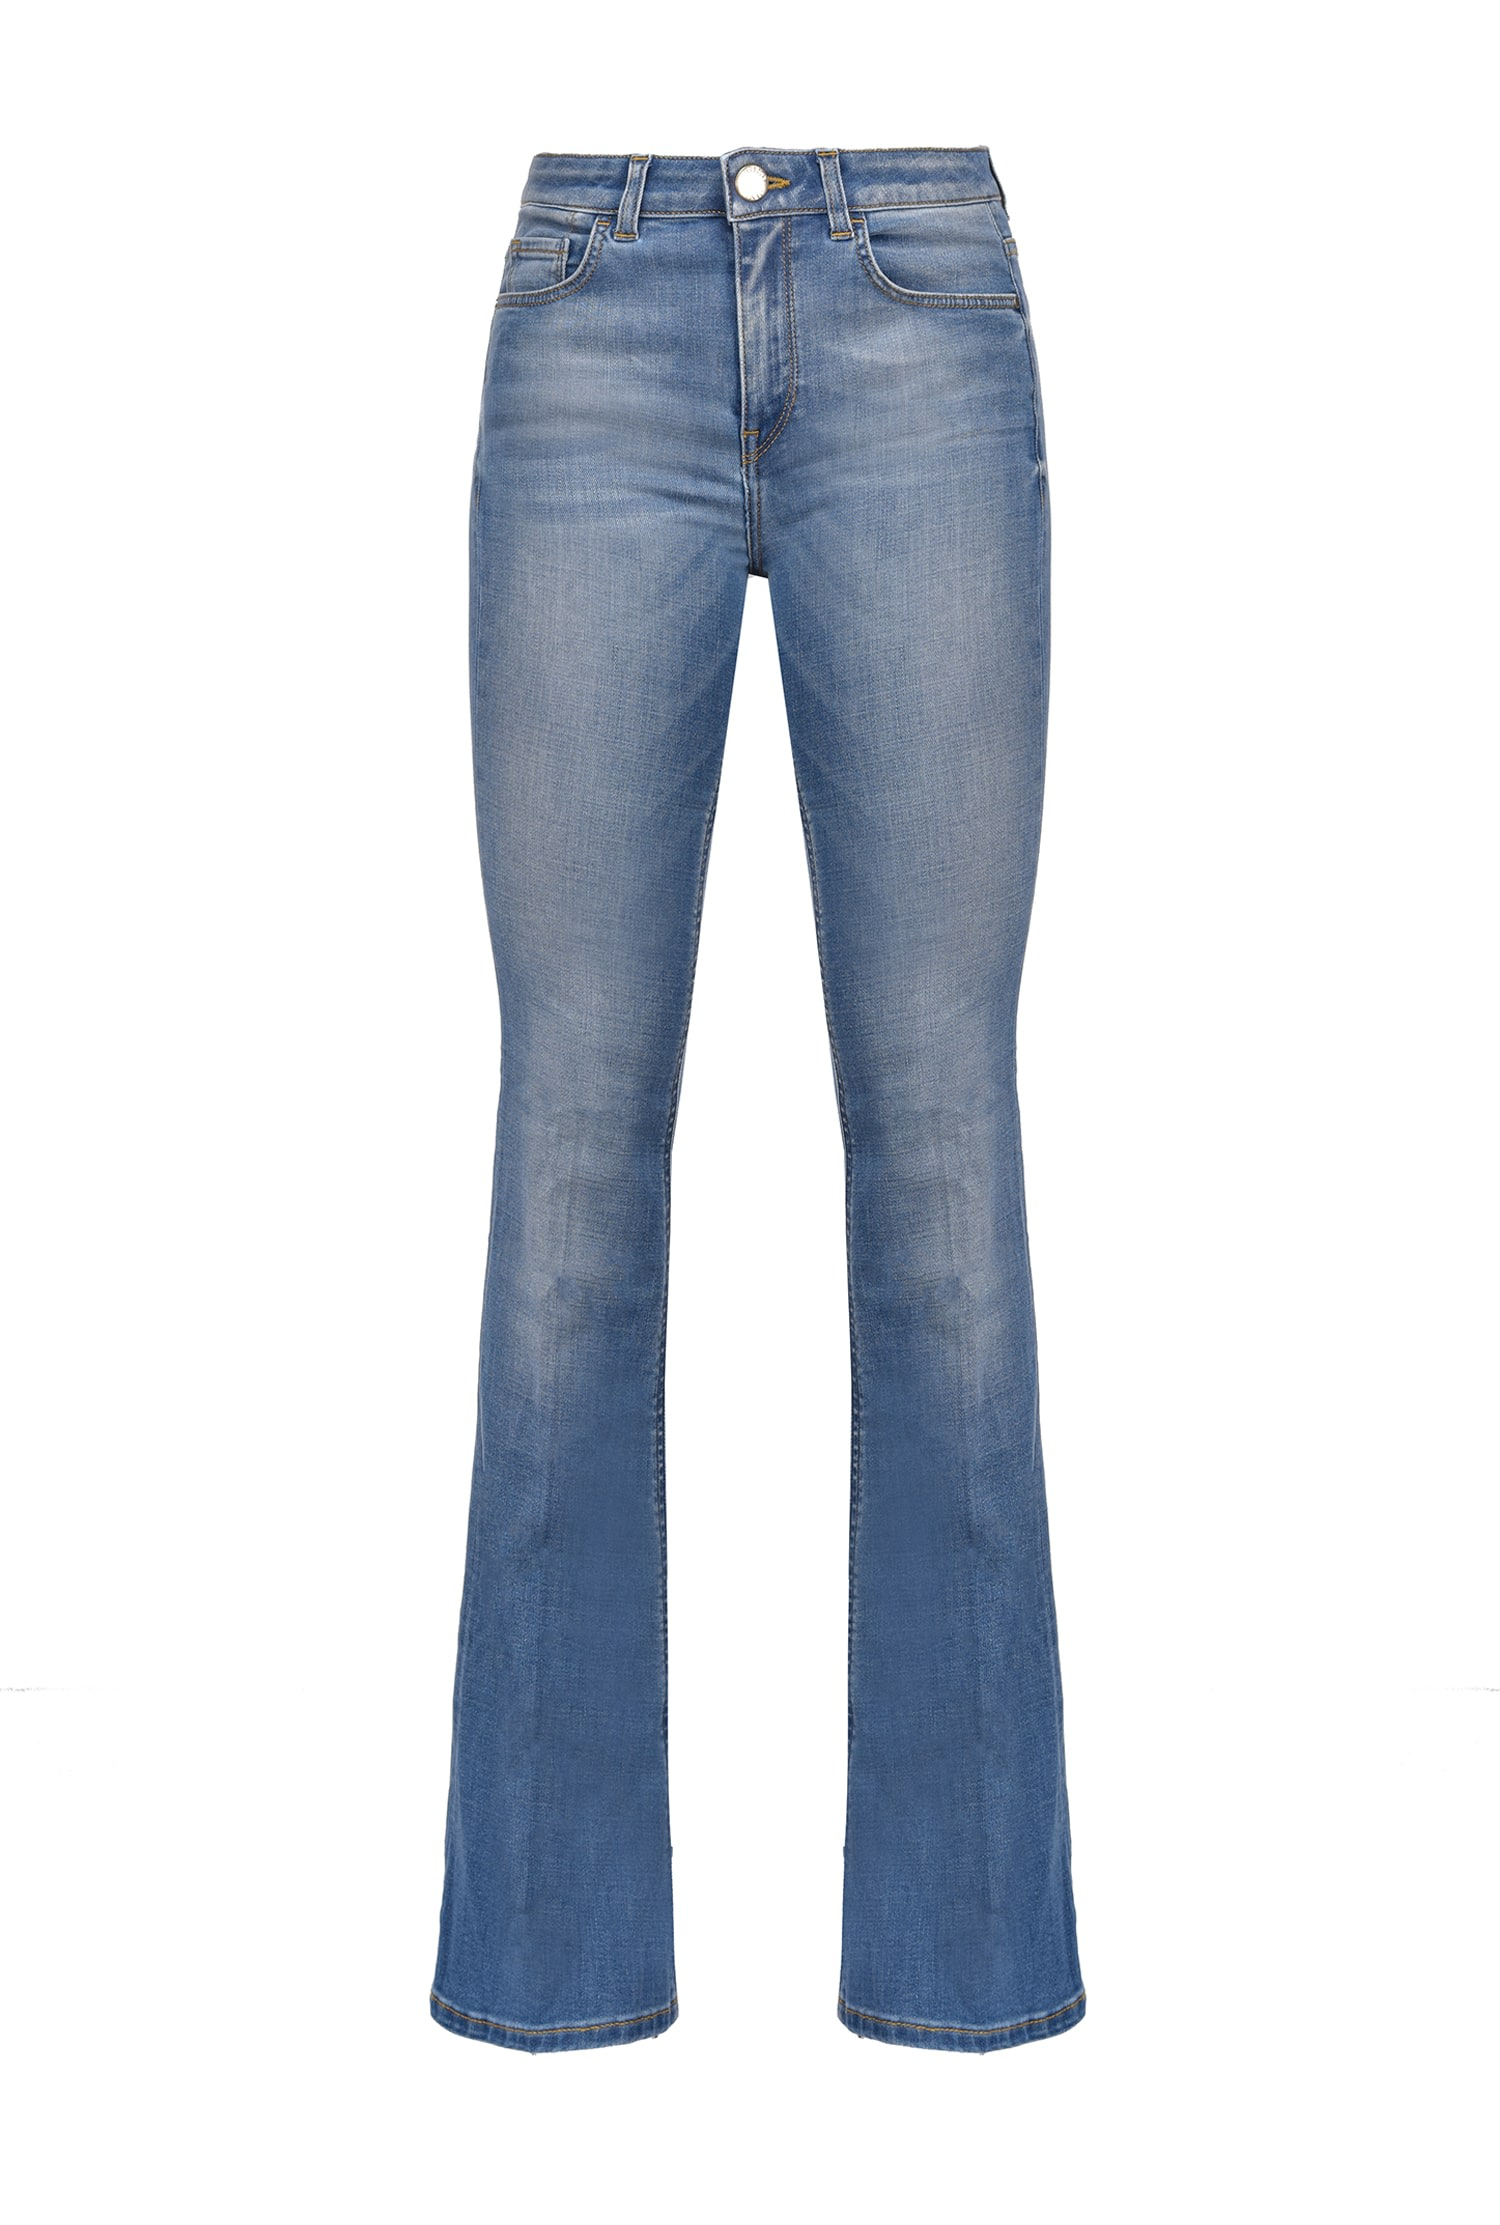 SHOPPING ON LINE PINKO JEANS SKINNY VINTAGE SABRINA 29 SKINNY NEW  COLLECTION  WOMEN'S  SPRING  SUMMER 2021